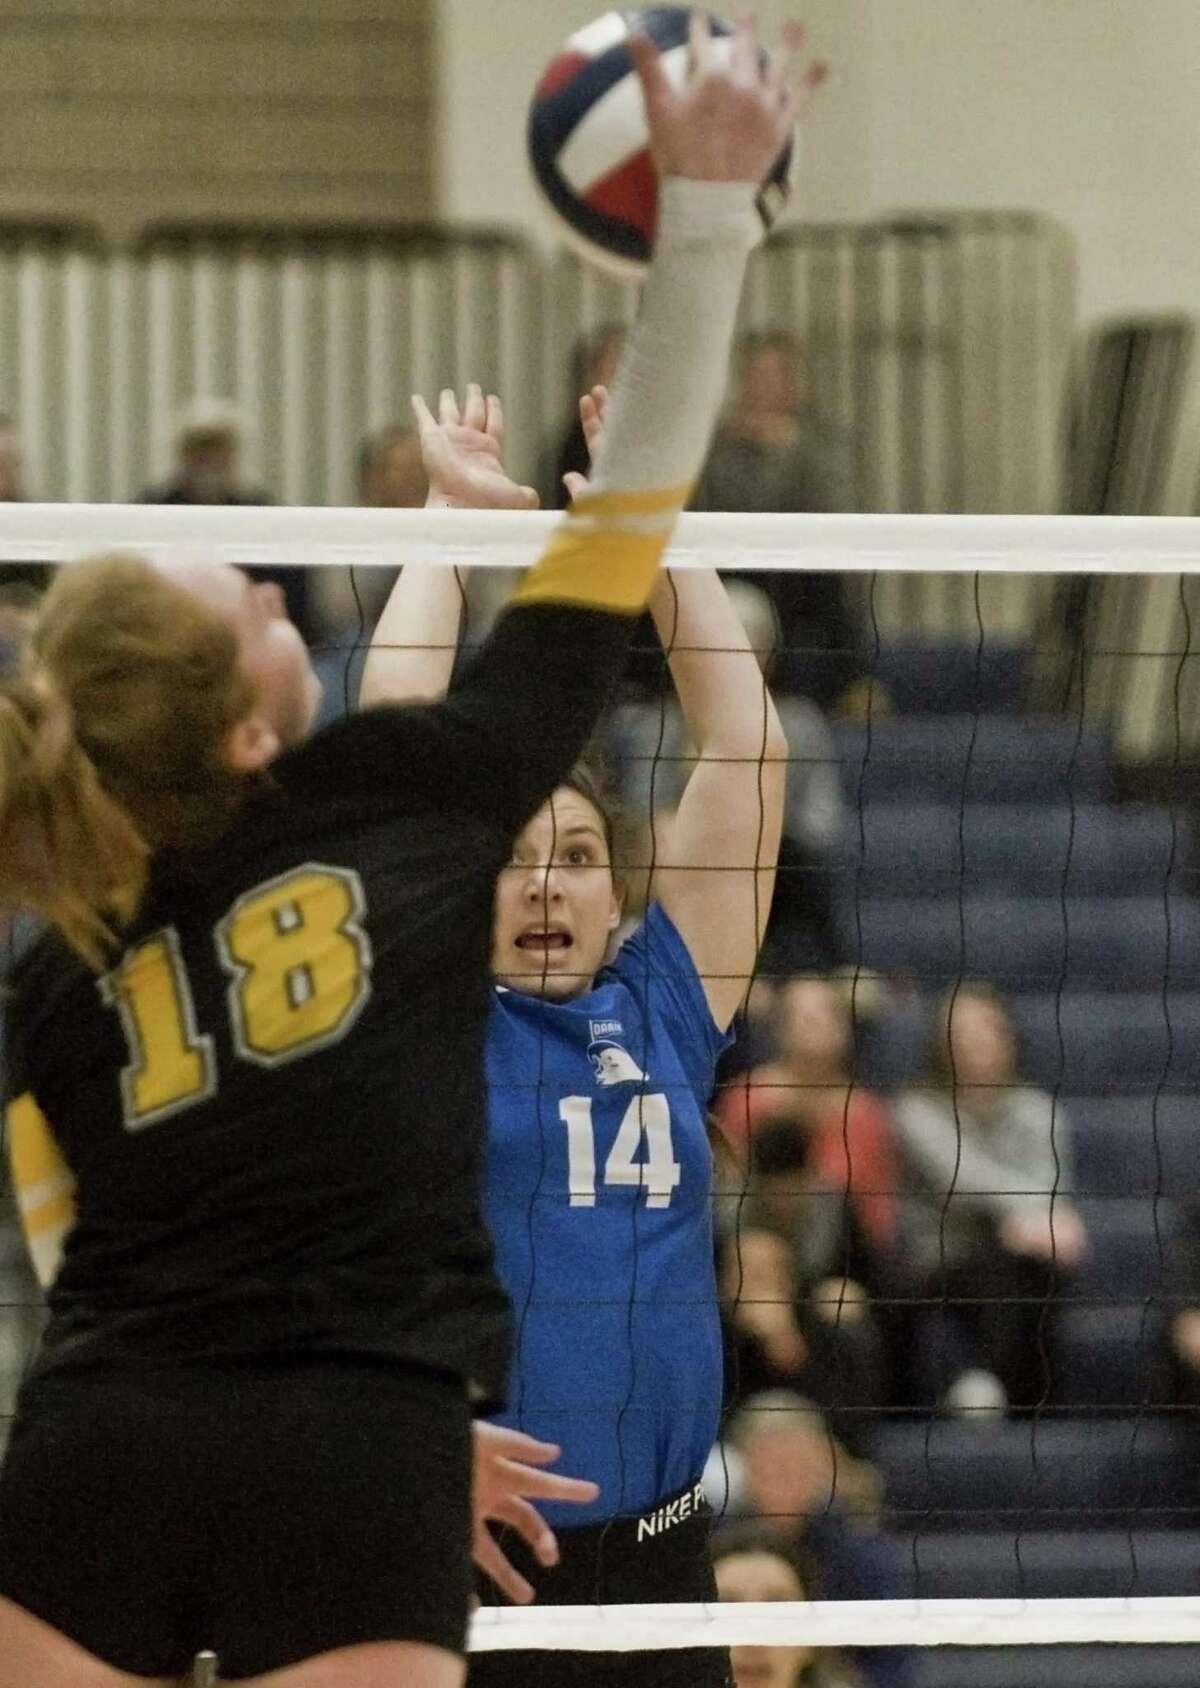 Darien High School's Cristina Escajadillo tries to block a shot in the Class LL volleyball championship game against Amity Regional High School, played at East Haven High School. Saturday, Nov. 17, 2018